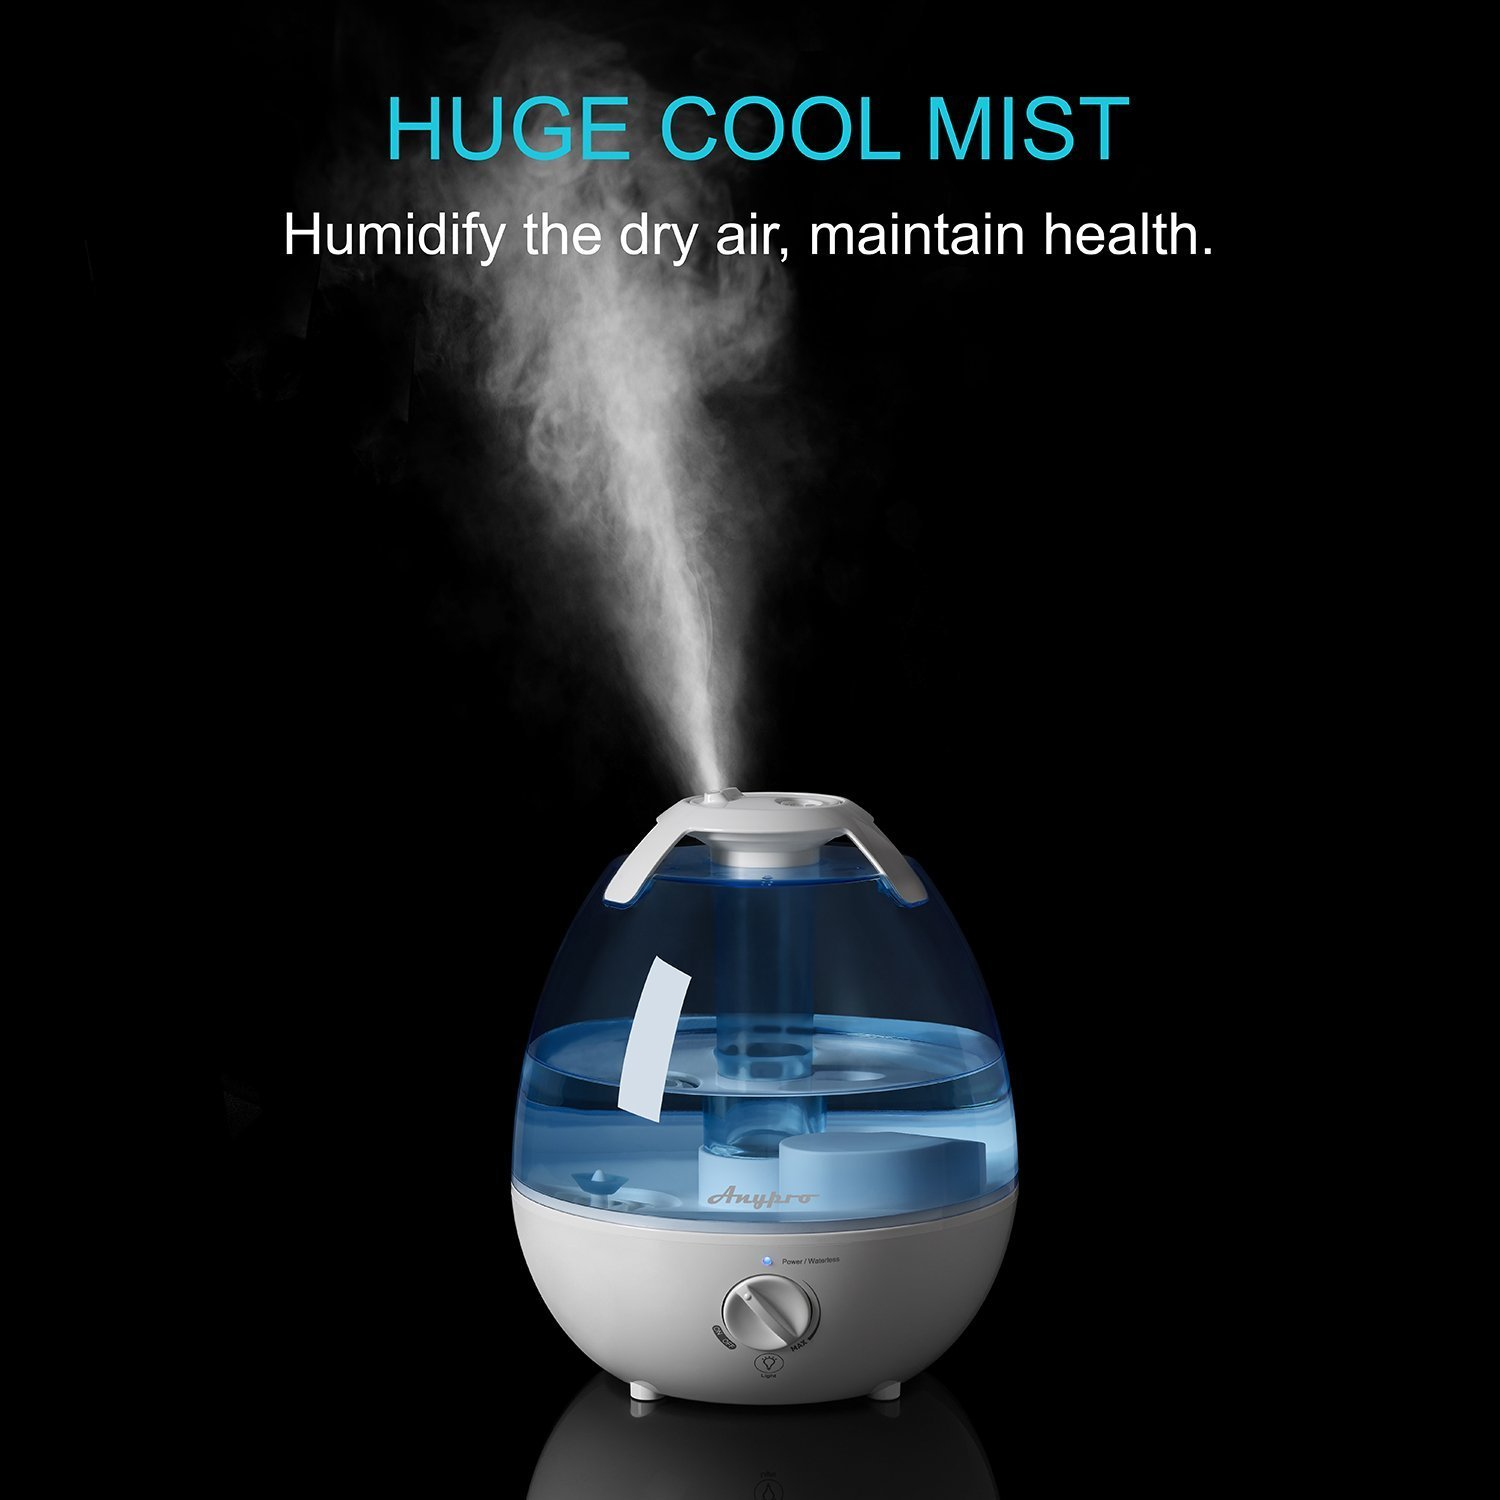 Quiet Cool Humidifier – 0.9 Gallon/3.5L Ultrasonic Air Humid